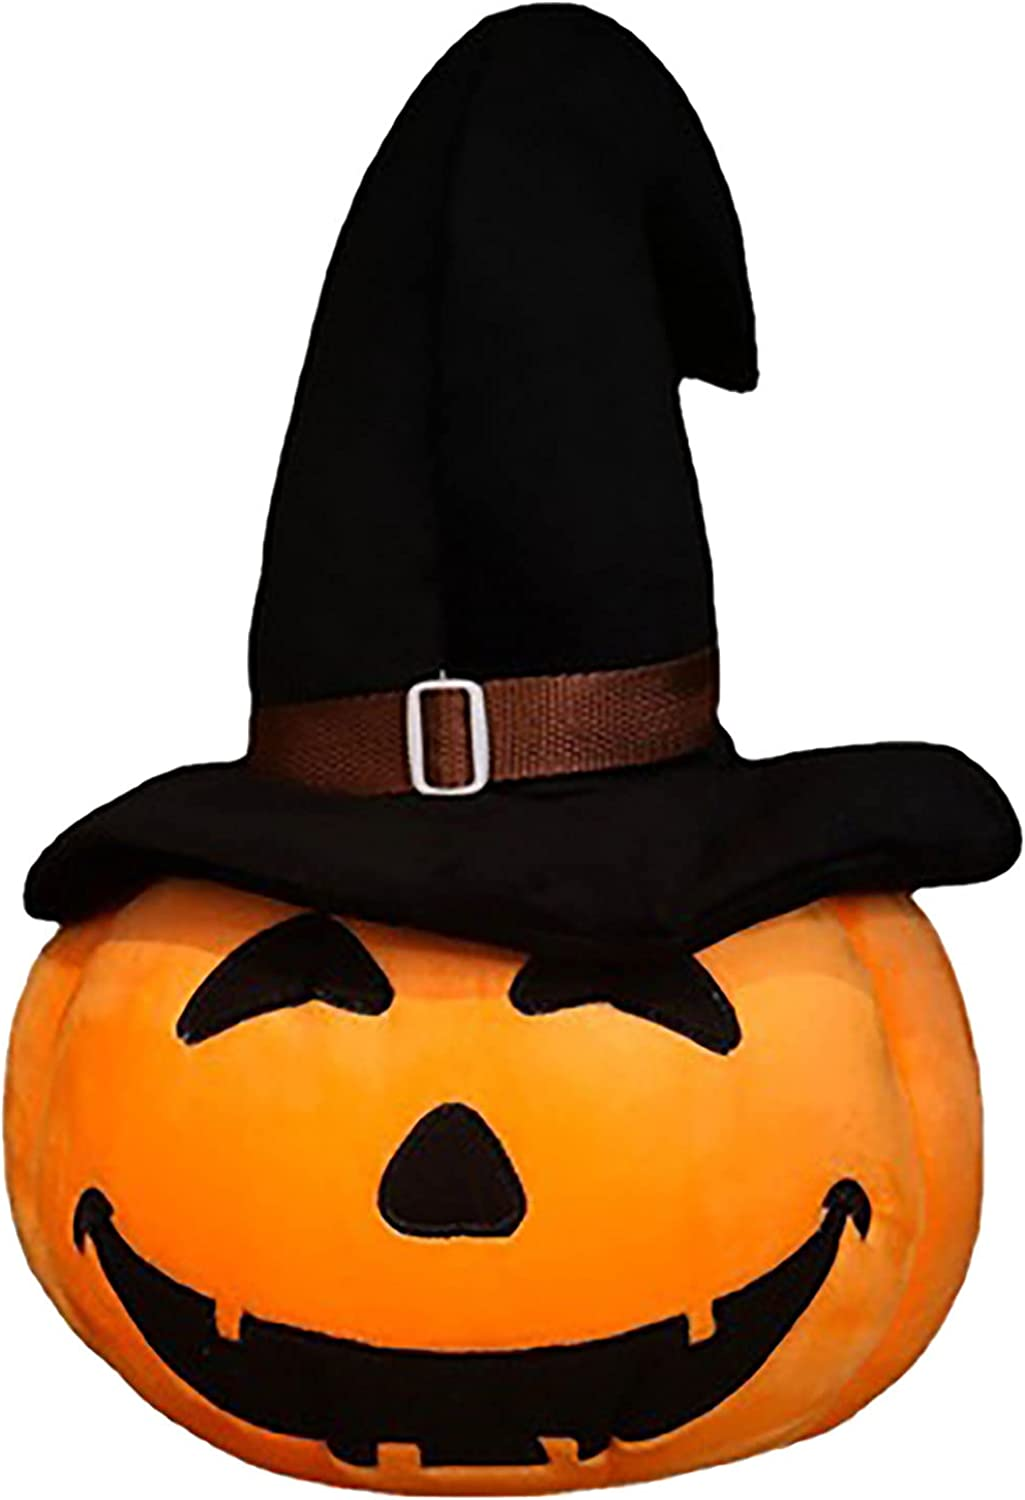 ZHANSANFM Halloween All items free shipping Couch Pillow K10 Pumpkin Plush Limited price Soft